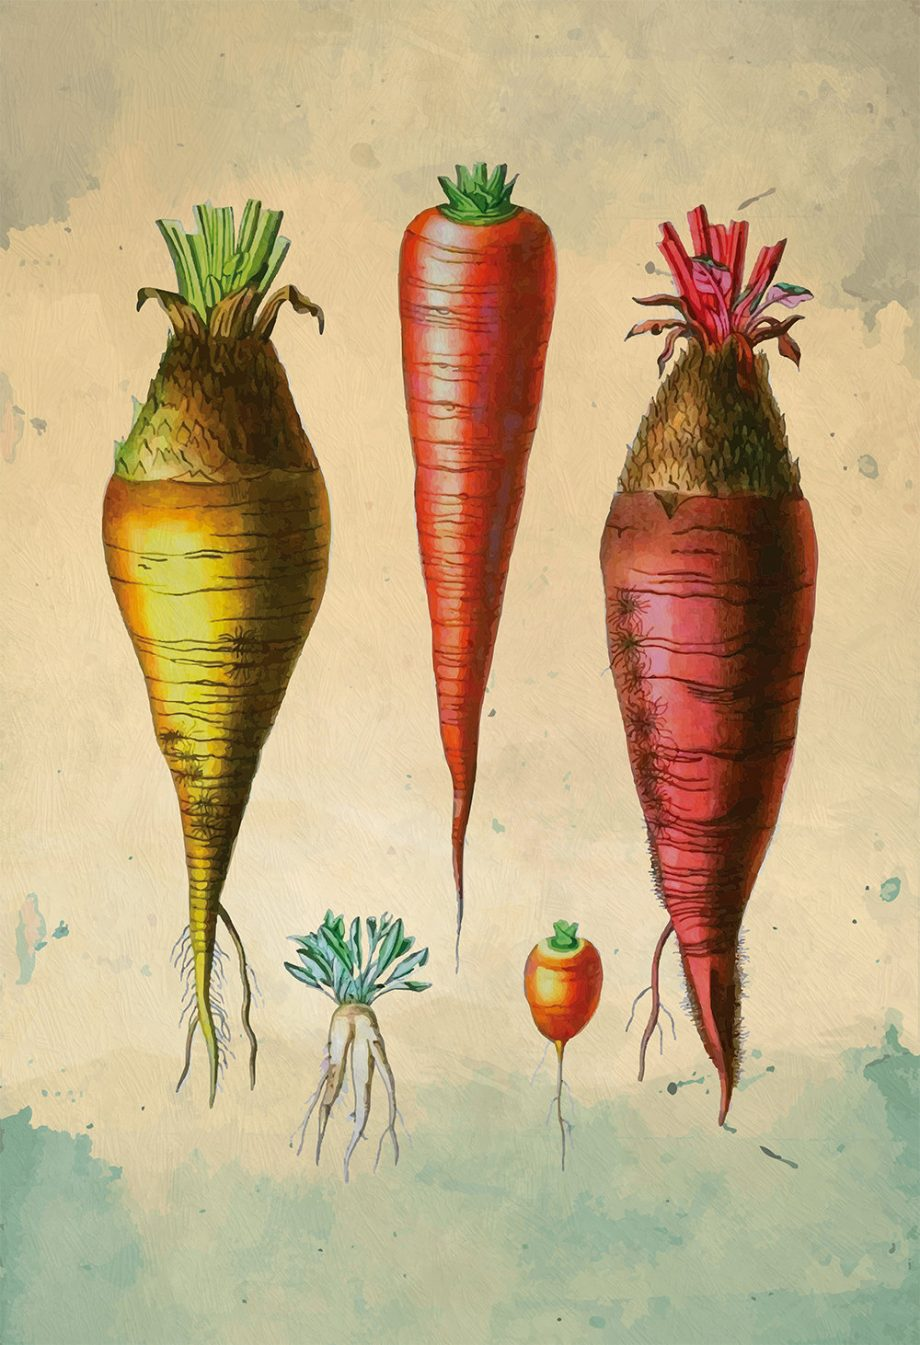 Kitchen Print Kitchen Decor Carrot Varities Art Rustic Farmhouse Giclee Vegan Print Vegetable Print on Cotton Canvas and Satin Photo Paper